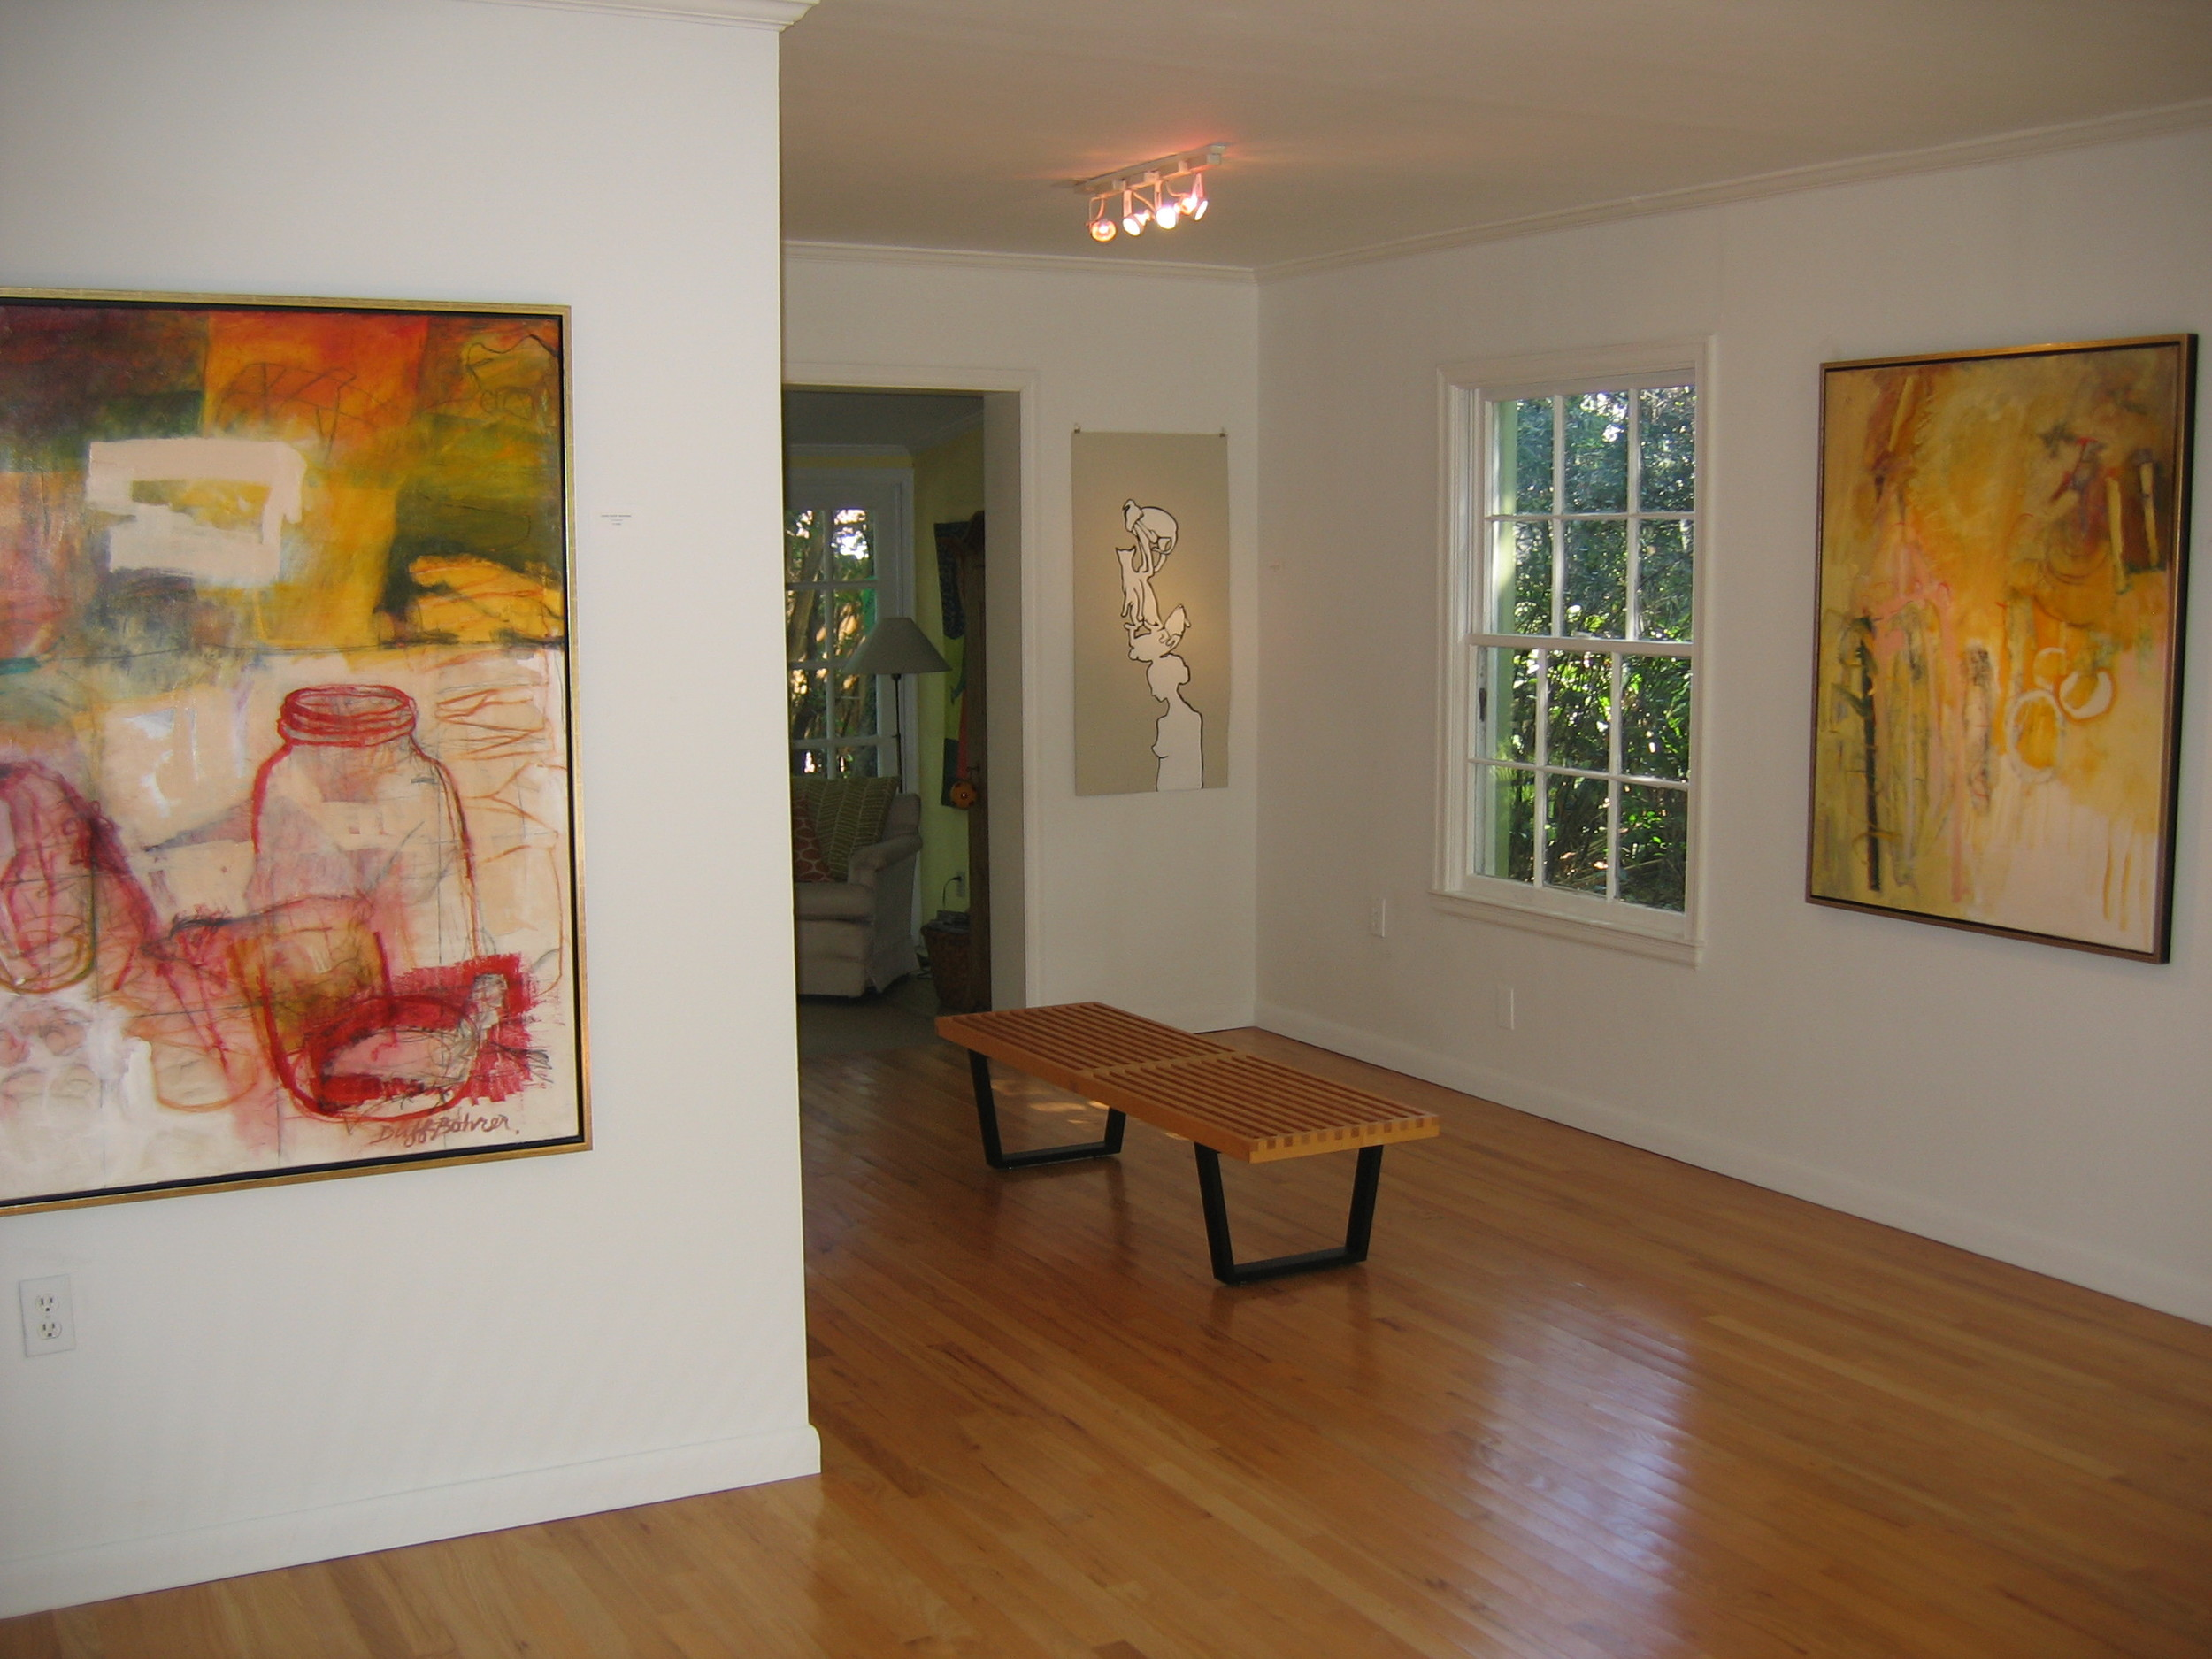 Joan Duff-Bohrer, above and far right; Tracy Midulla Reller, on paper in middle; shown as part of an Art House 3rd Thursday open house.